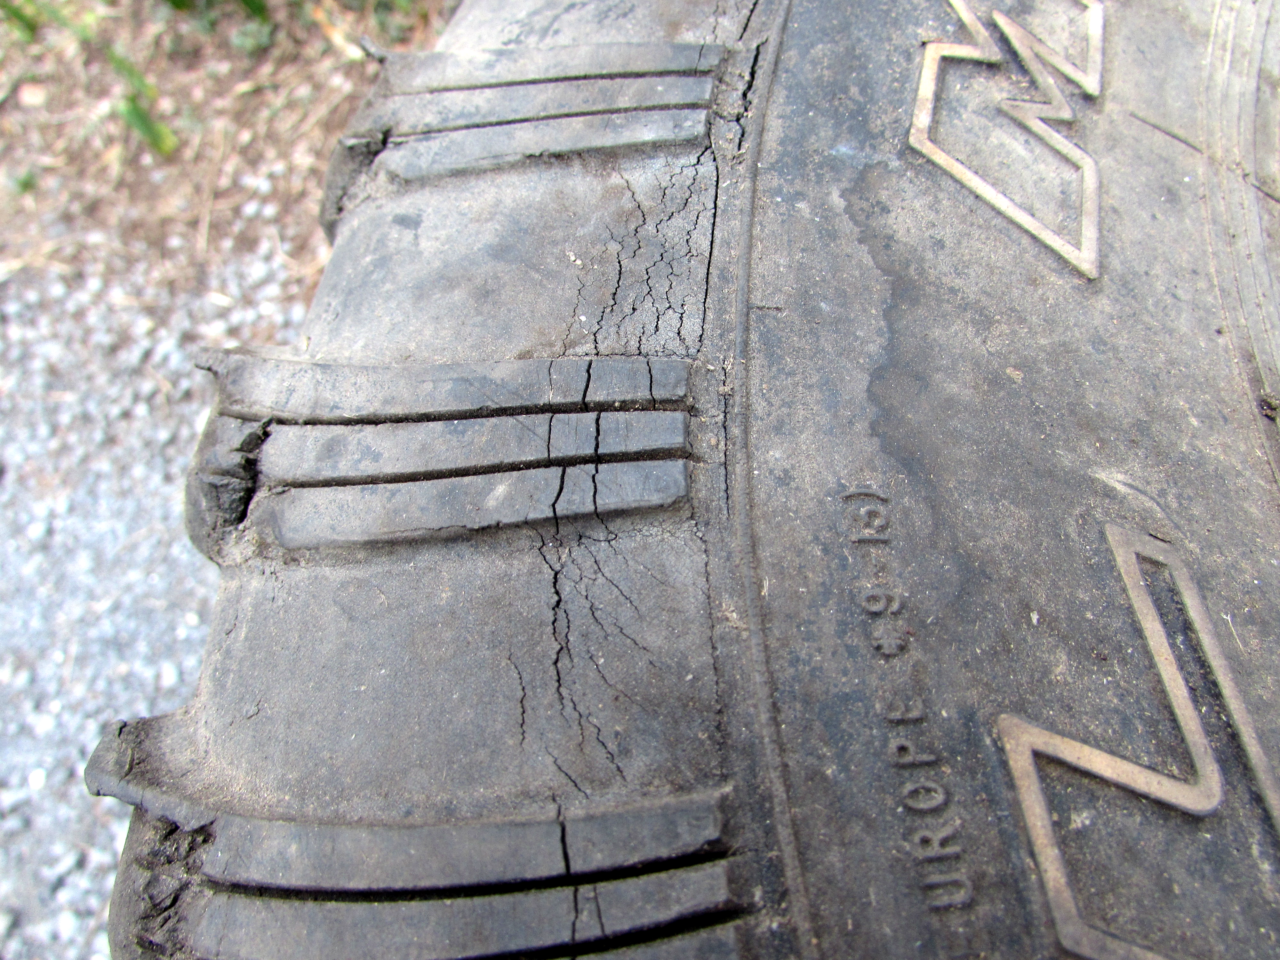 Mud Tires 008 of 10.png